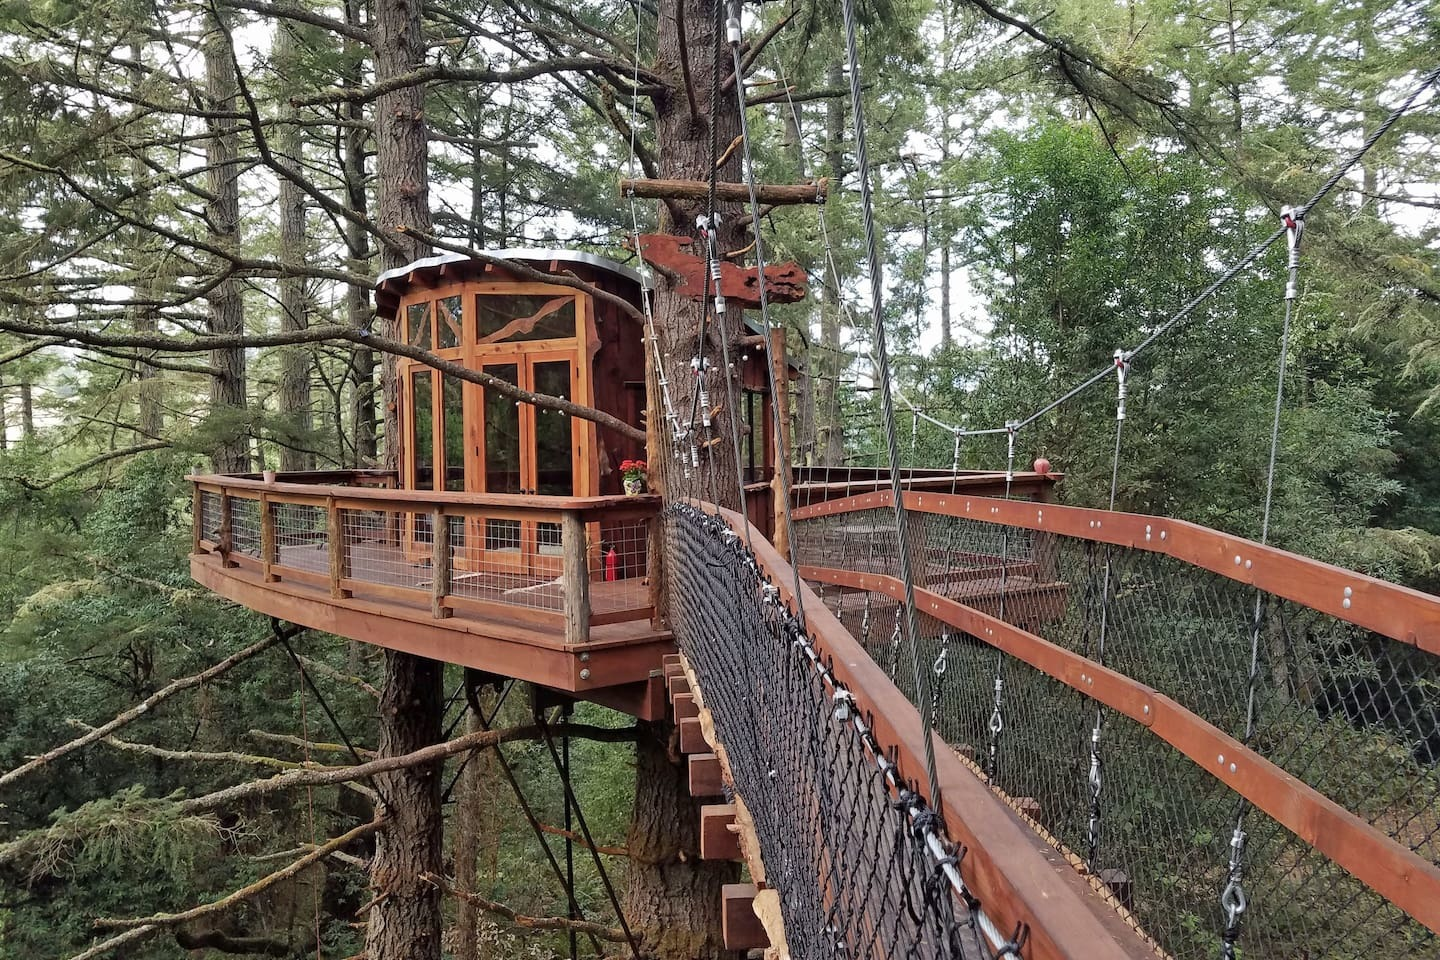 This One Is A Looker It S Been Furbished Using Fallen Old Growth Redwood Logs On 400 Acre Property You Ll Feel Truly Secluded Traversing The Suspended